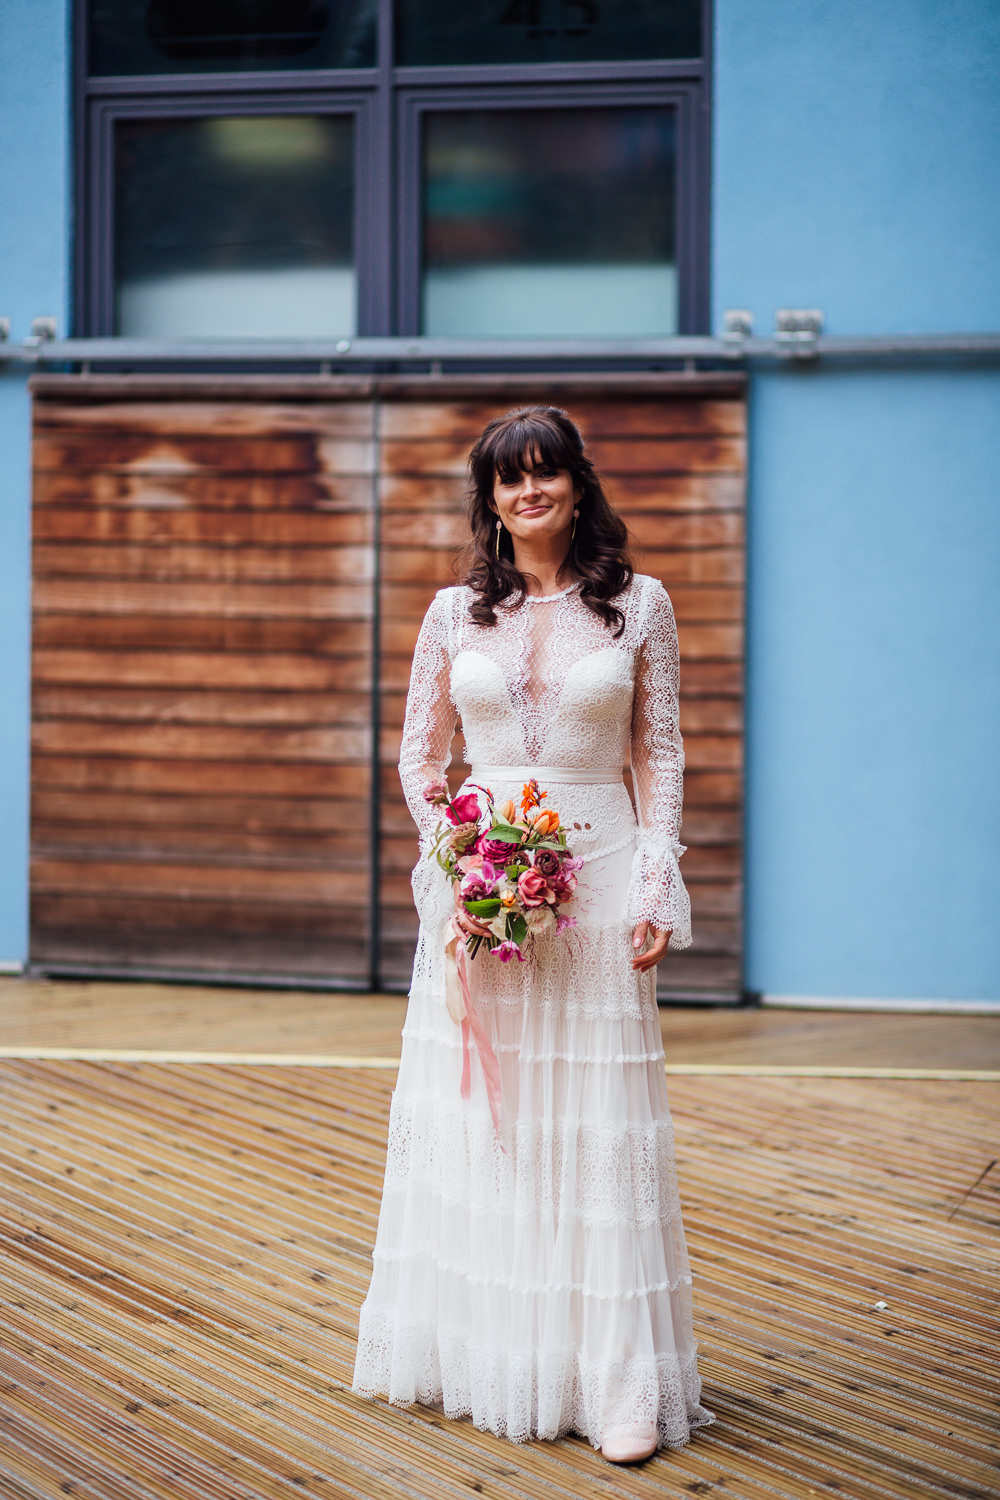 Lace Dress Gown Bridal Bridal Sleeves Catherine Deane Paintworks Wedding Matt Willis Photography